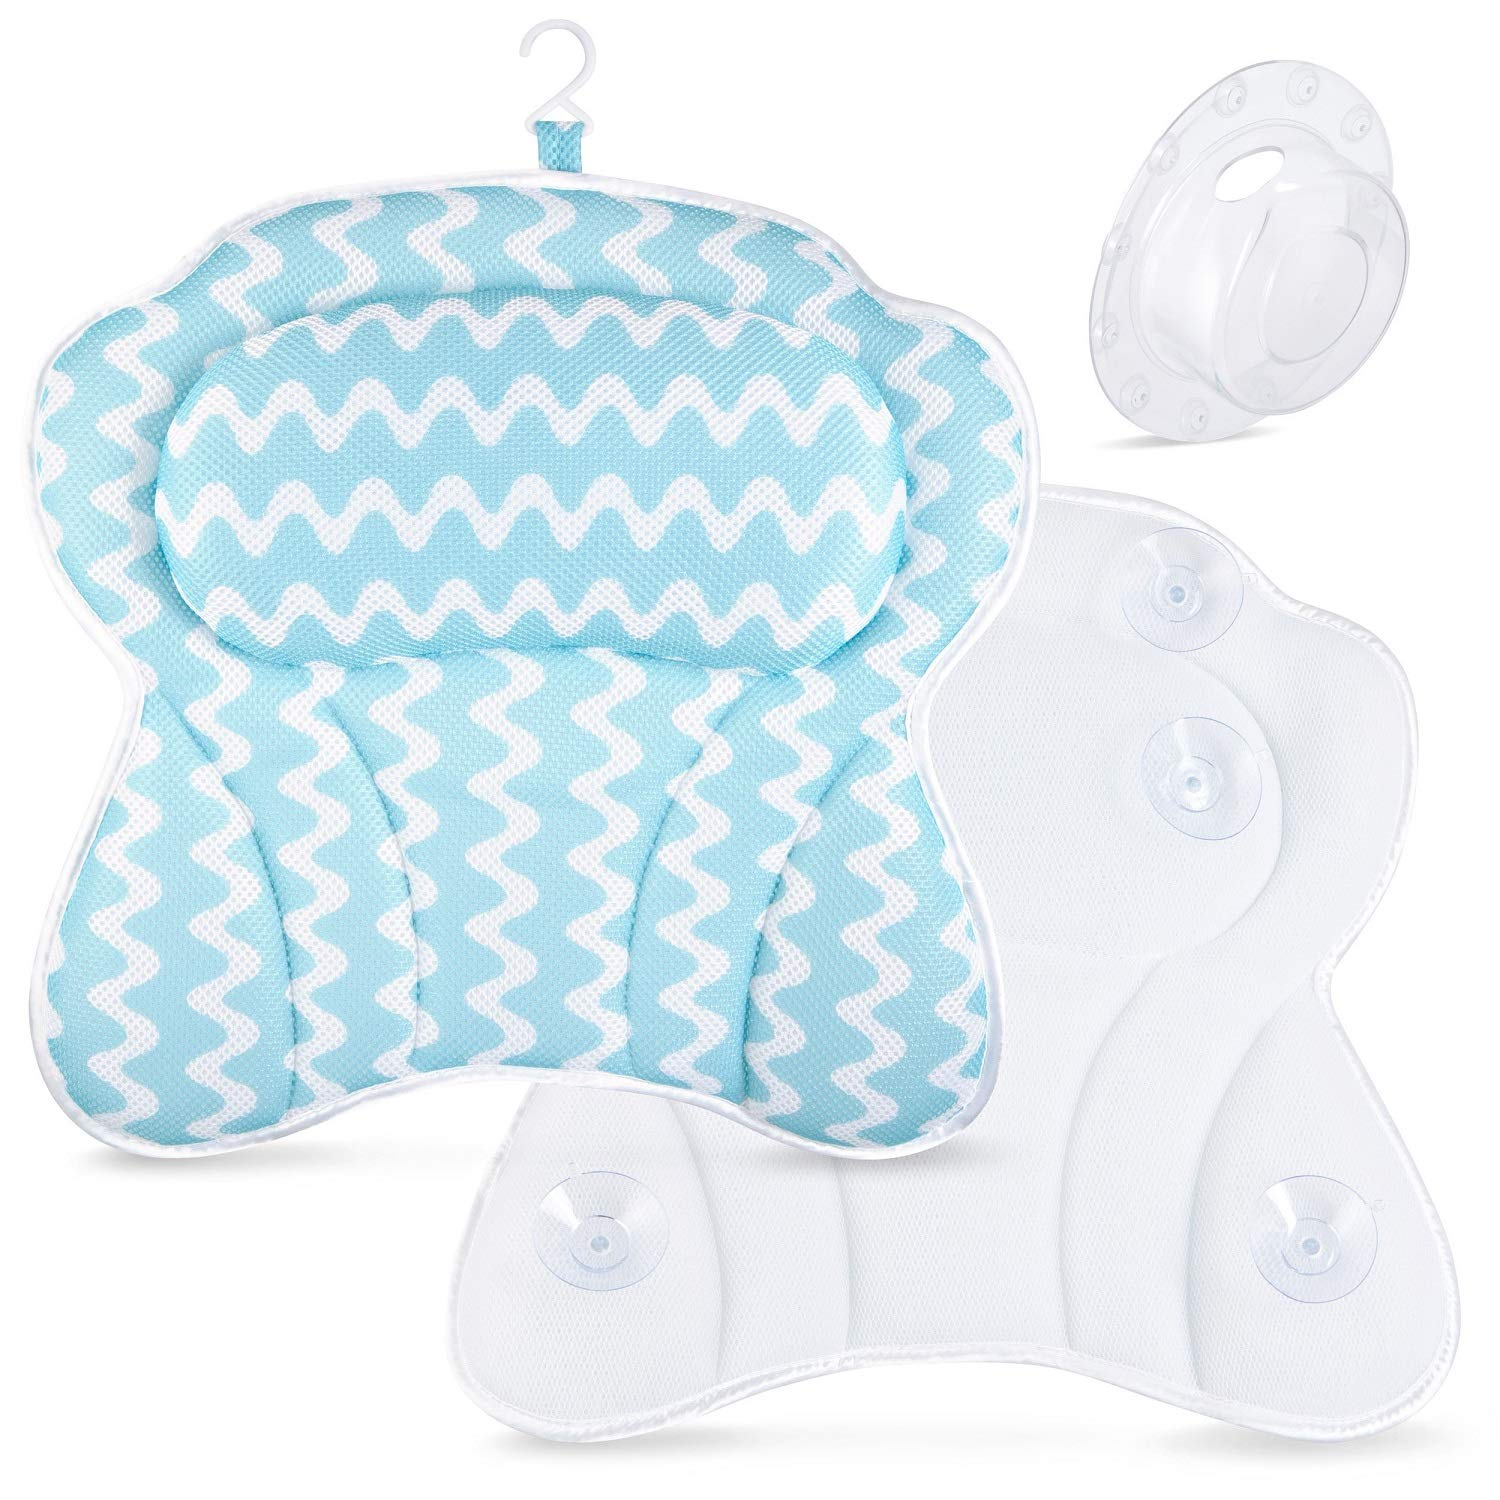 Bath Pillows for Lowest Ranking TOP7 price challenge Tub or Spa. Su Pillow Comfort Ergonomic and